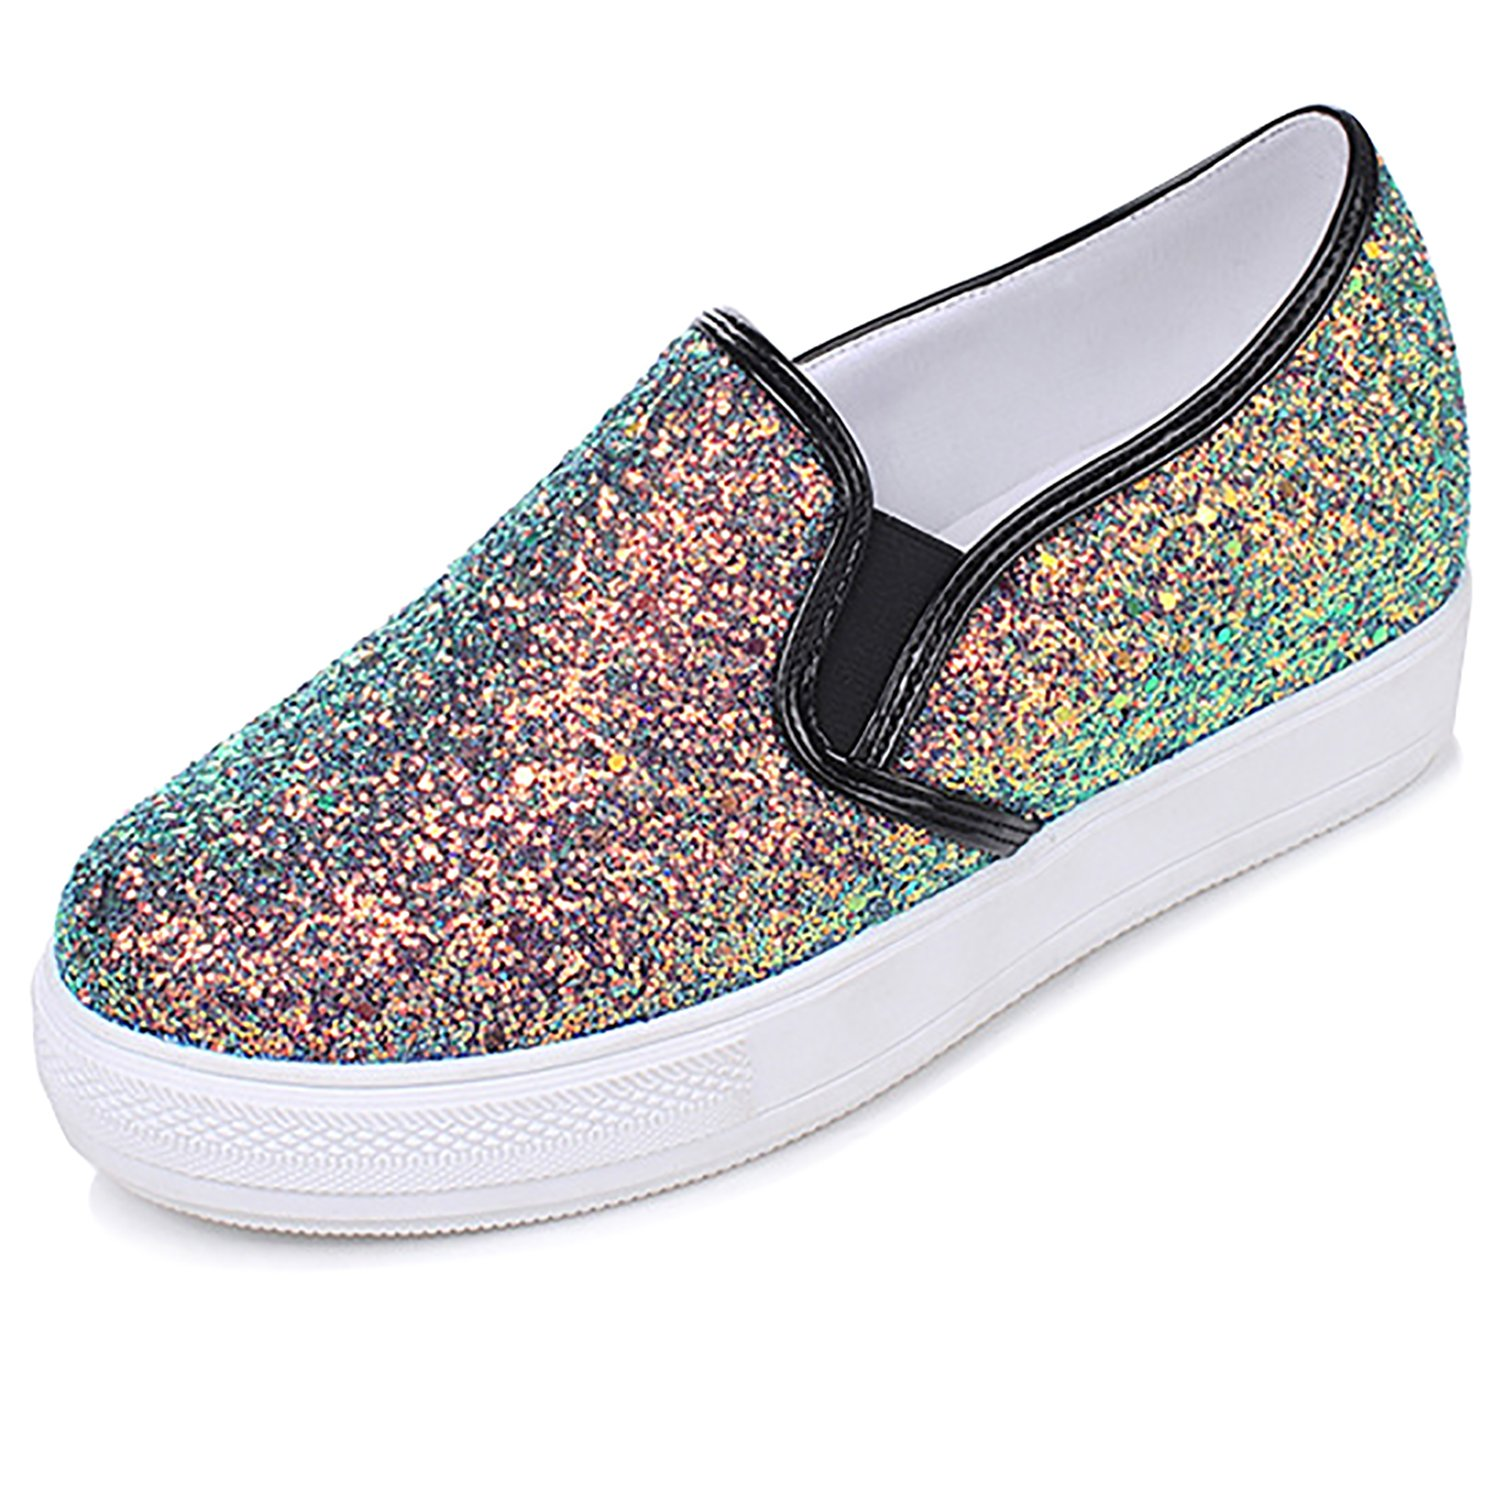 e32ccd88a Amazon.com | Odema Womens Glitter Sparkly Sequin Platform Shoes Sneakers  Slip On Shoes Loafers | Loafers & Slip-Ons